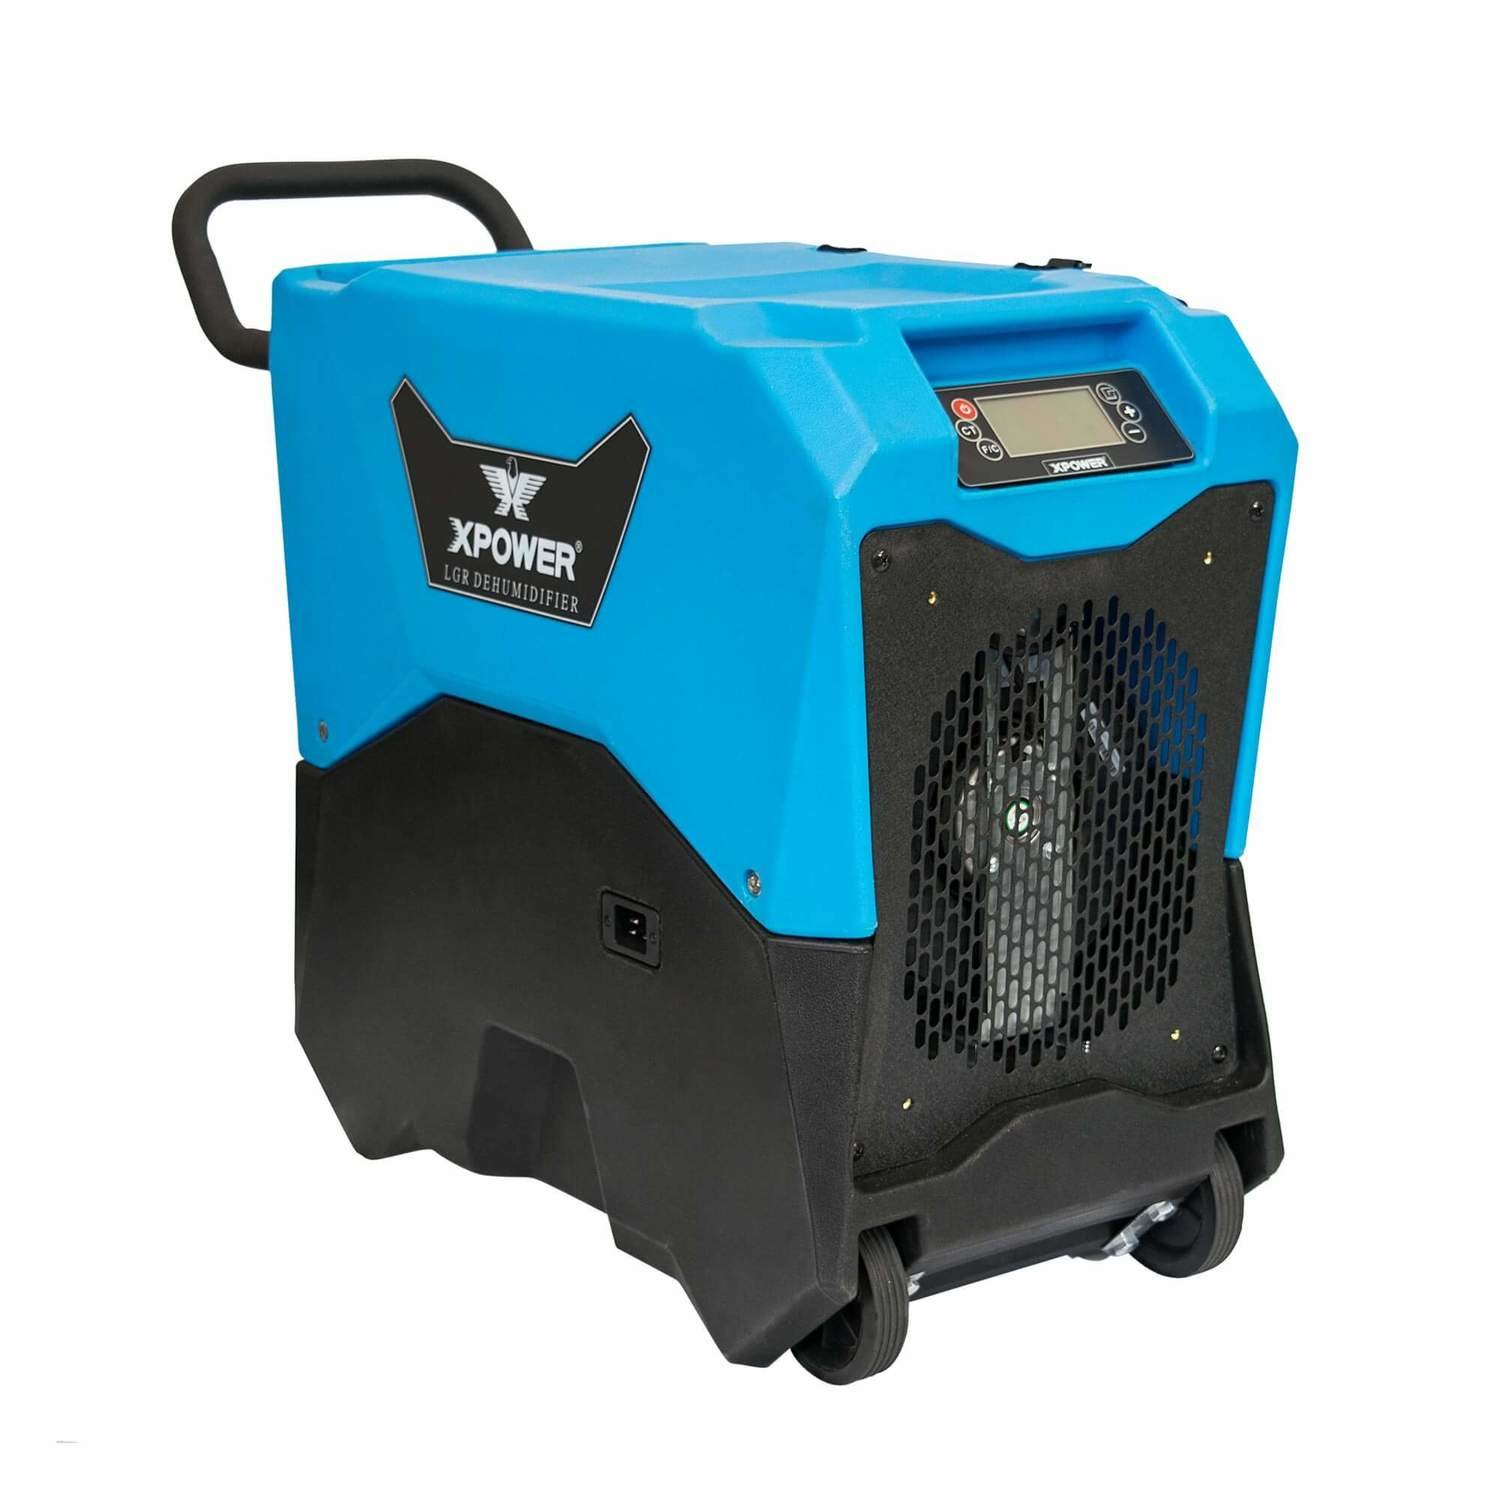 XPOWER XD-75LH Commercial LGR Dehumidifier w/ Handle & Wheels